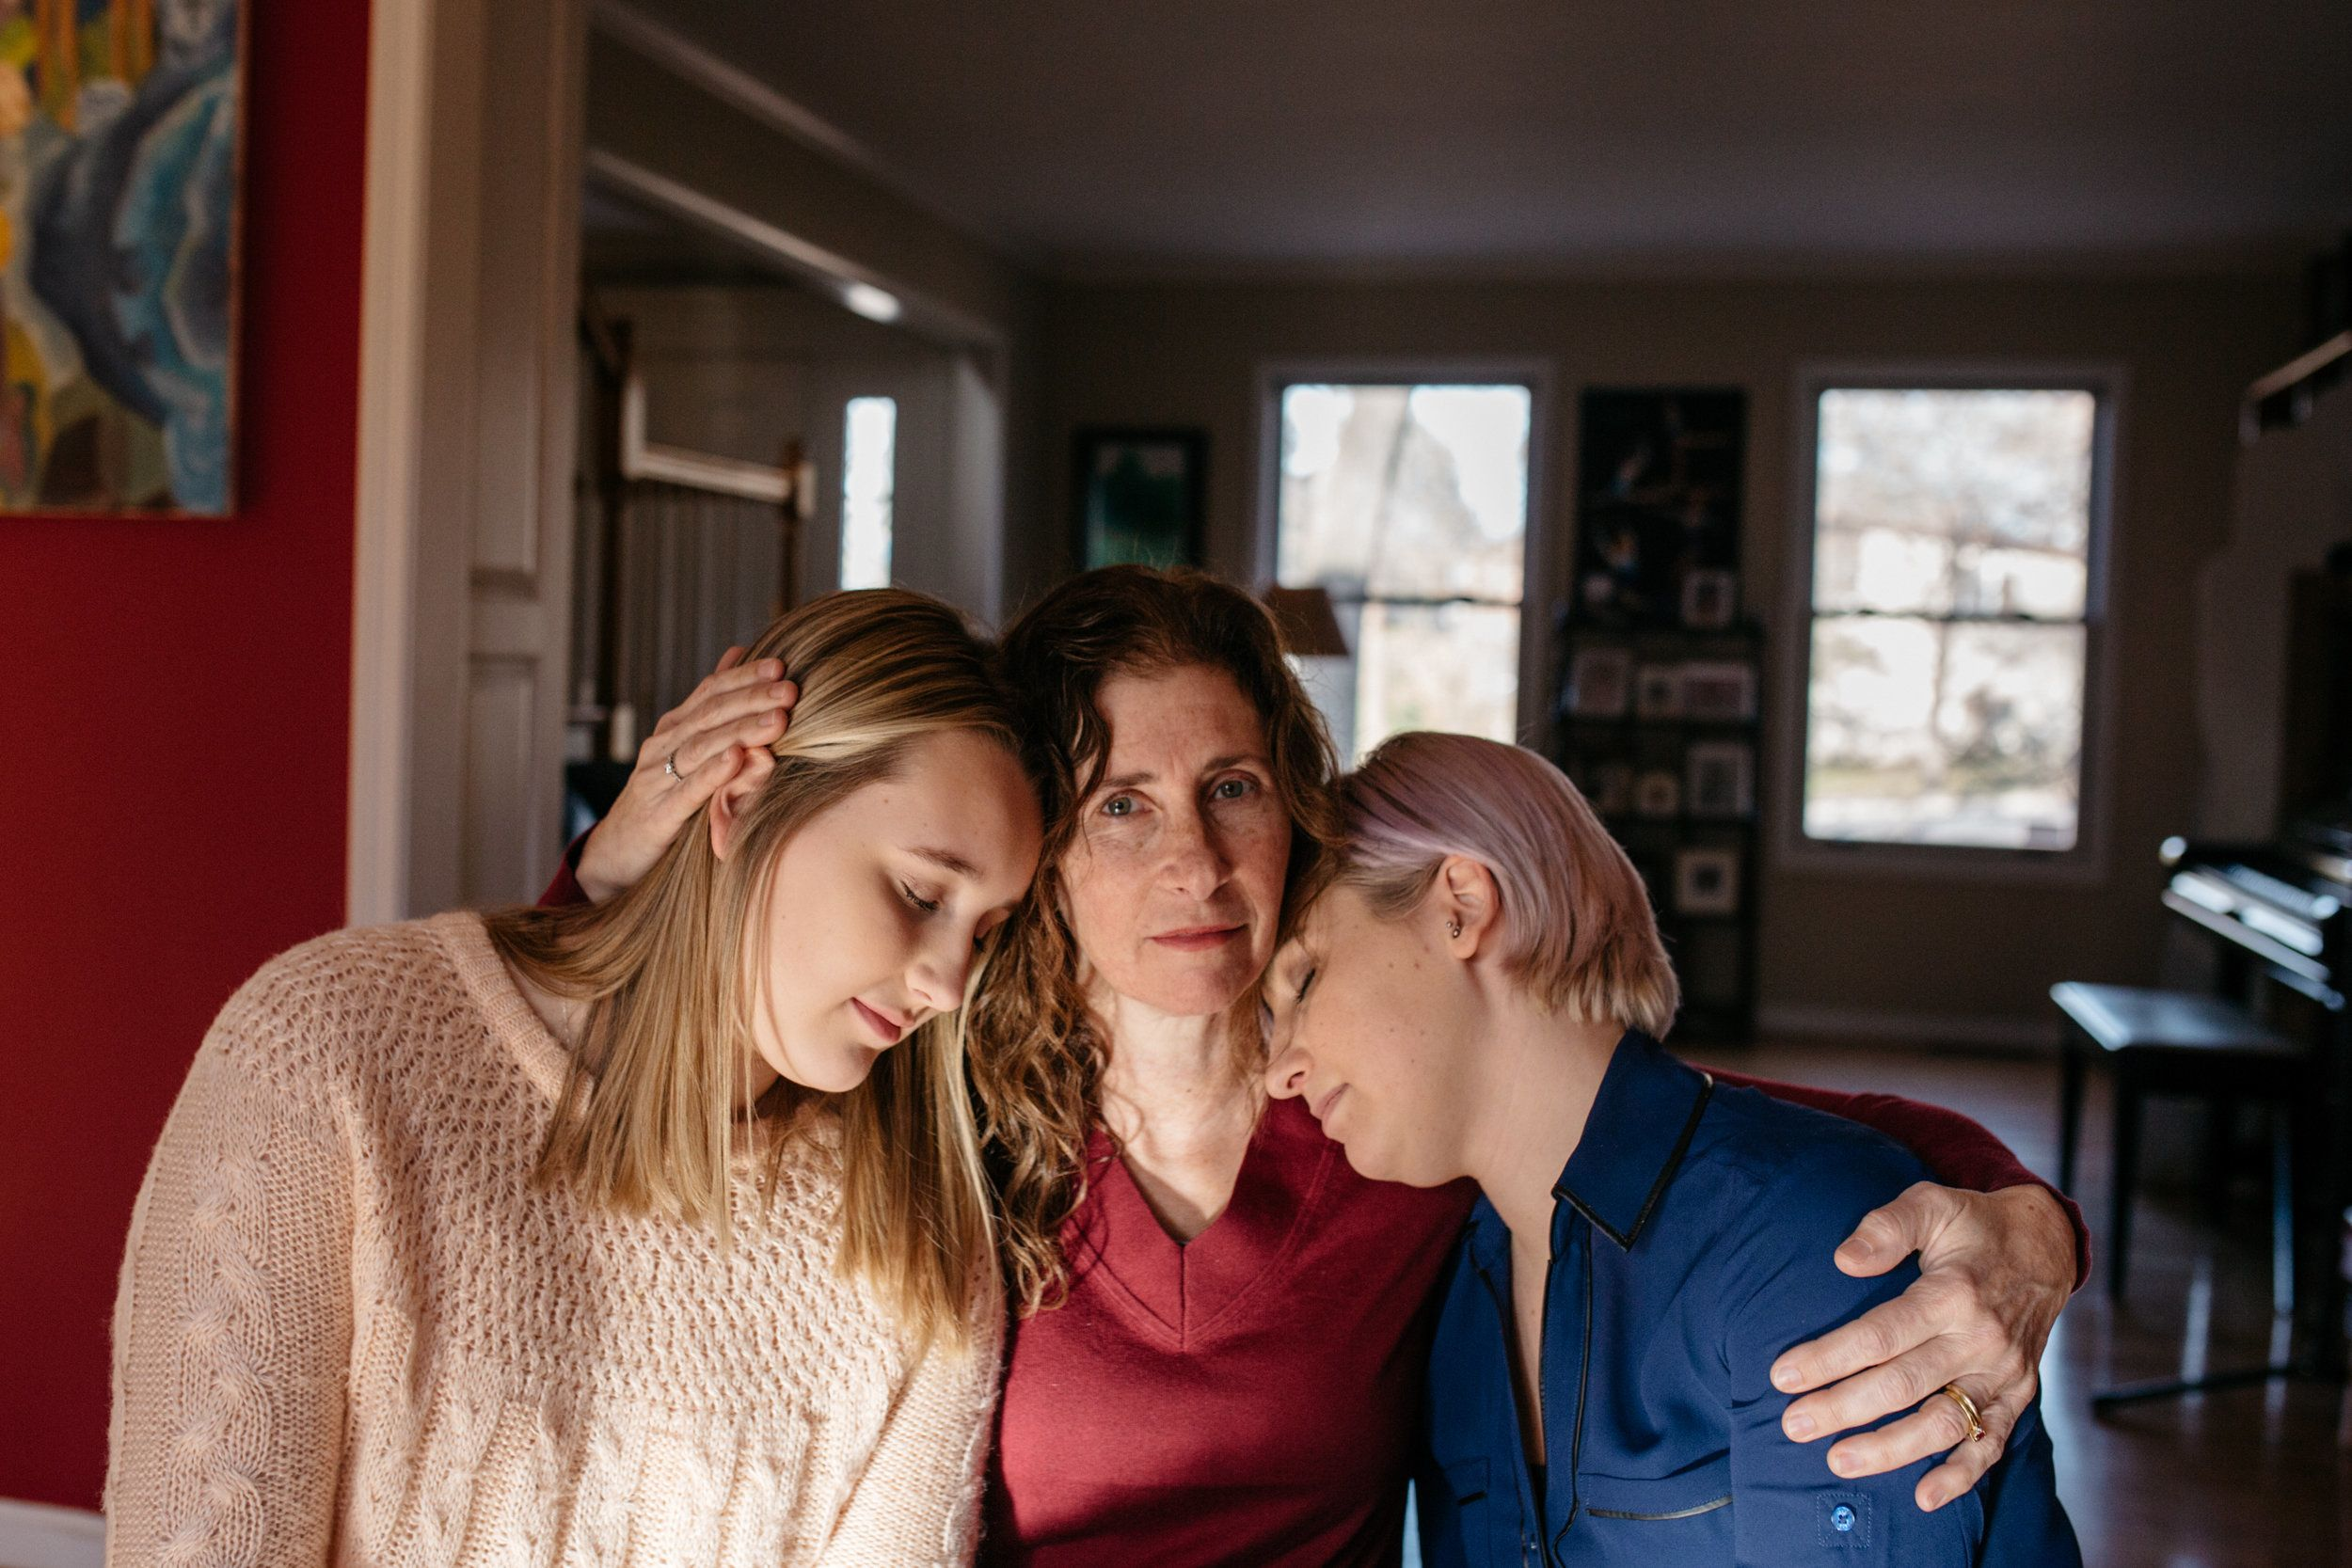 Suzanne Thomashow (center), a pediatrician and mother to Amanda (right) and Jessica (left), Nassar survivors inside their home in Lansing, Michigan.